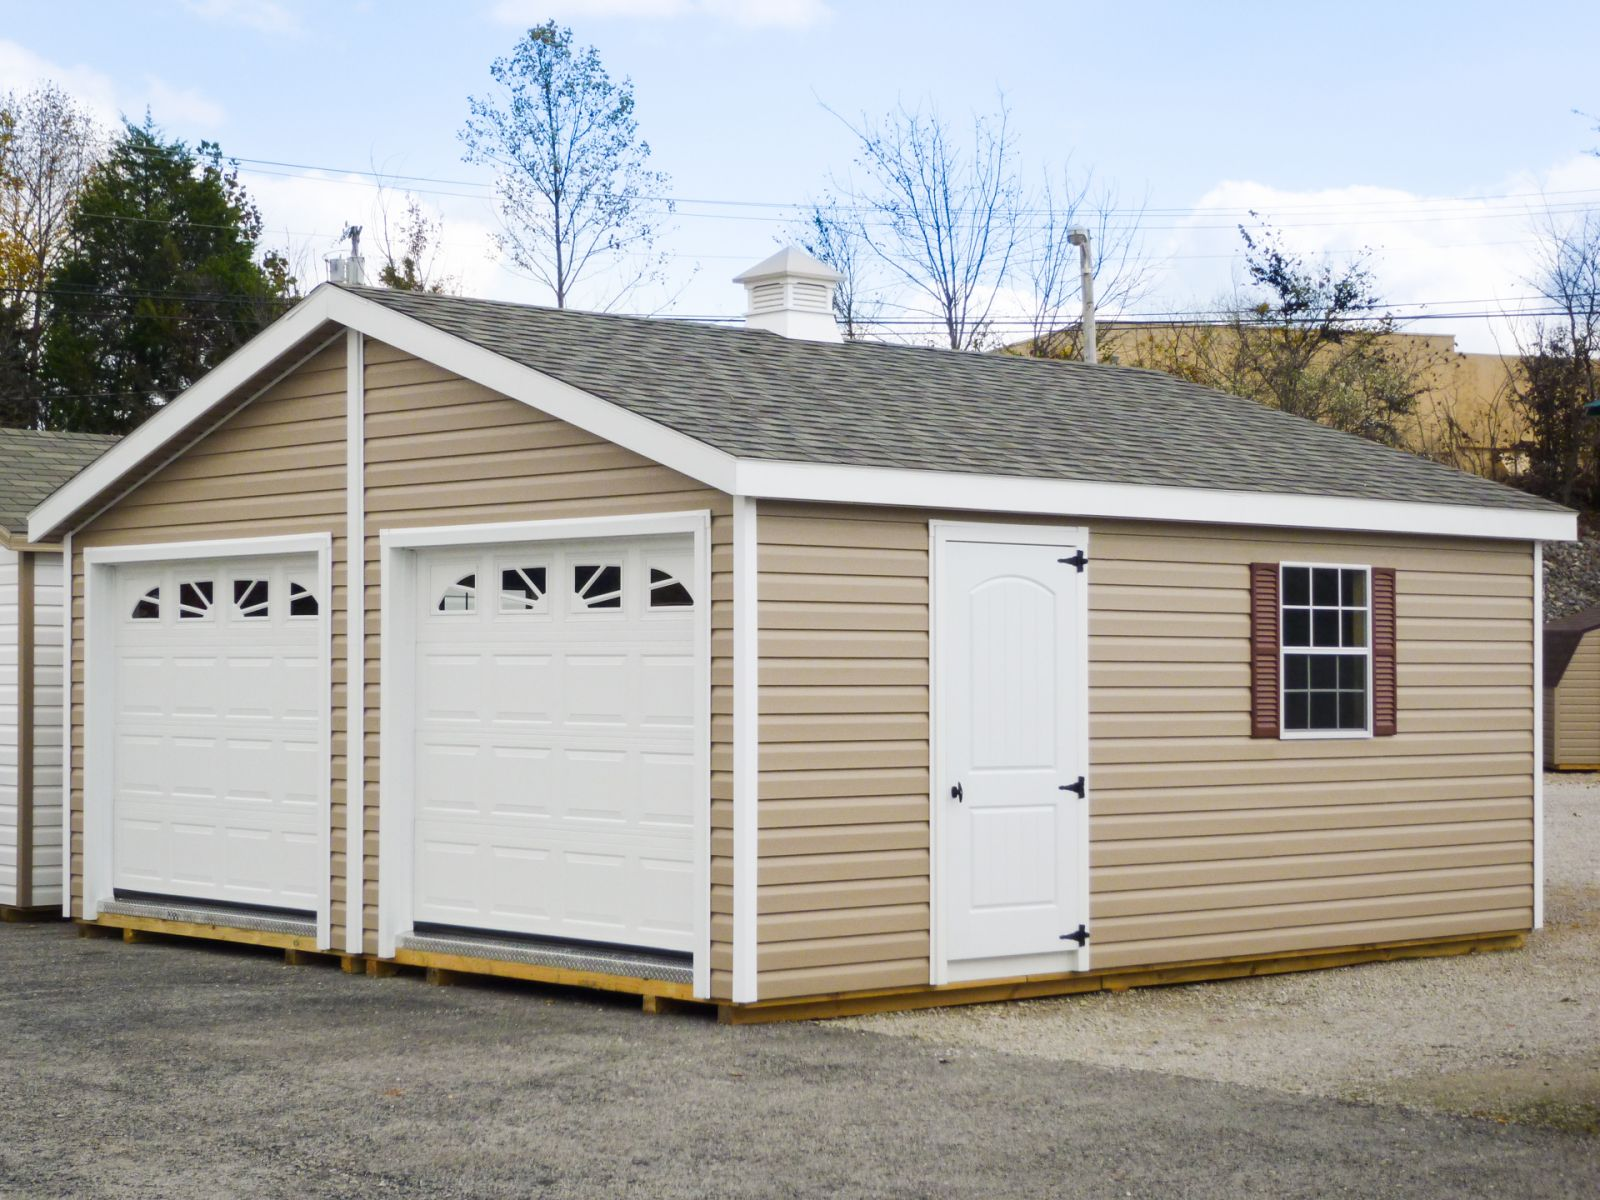 A portable garage shed for sale in Columbia, KY